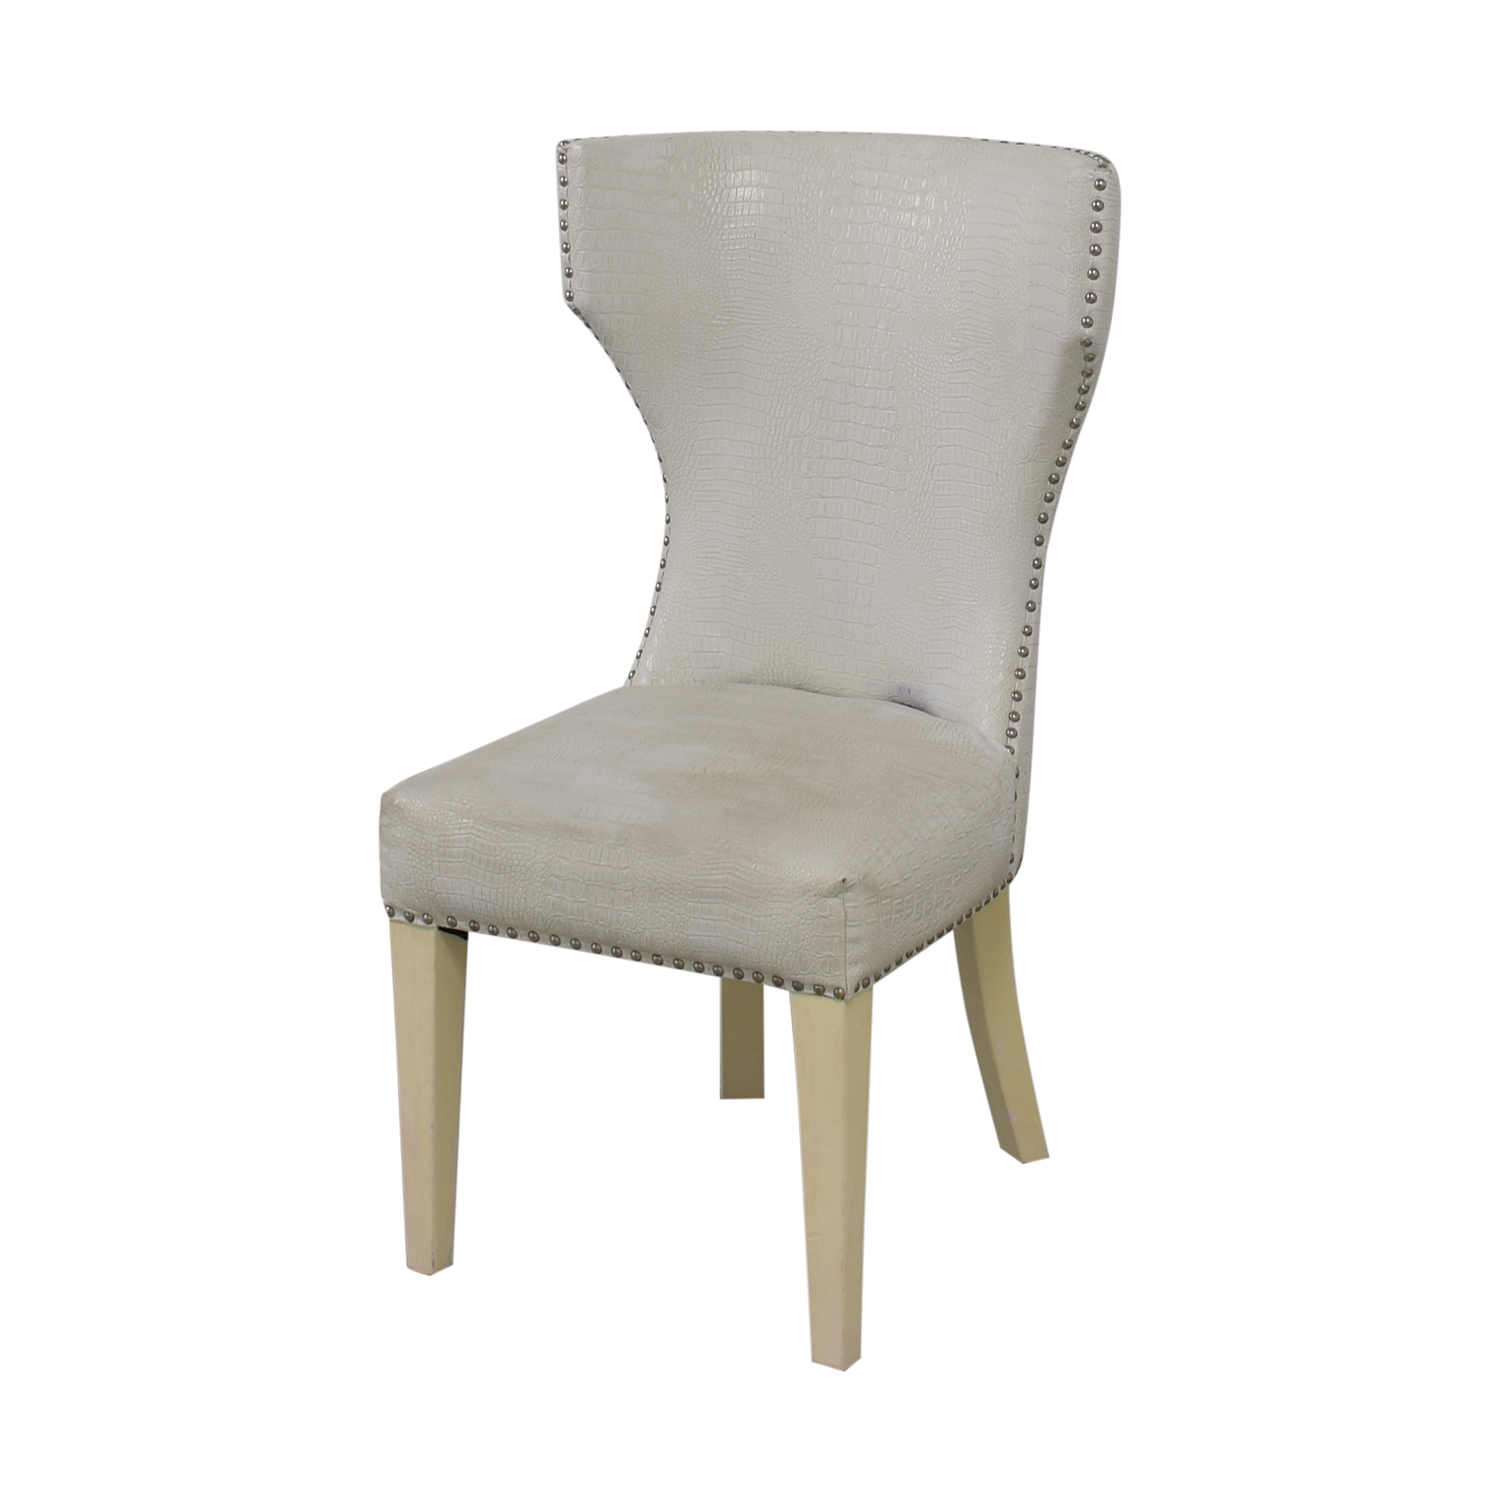 buy Shine by S.H.O. Verona Chair Shine by S.H.O Accent Chairs